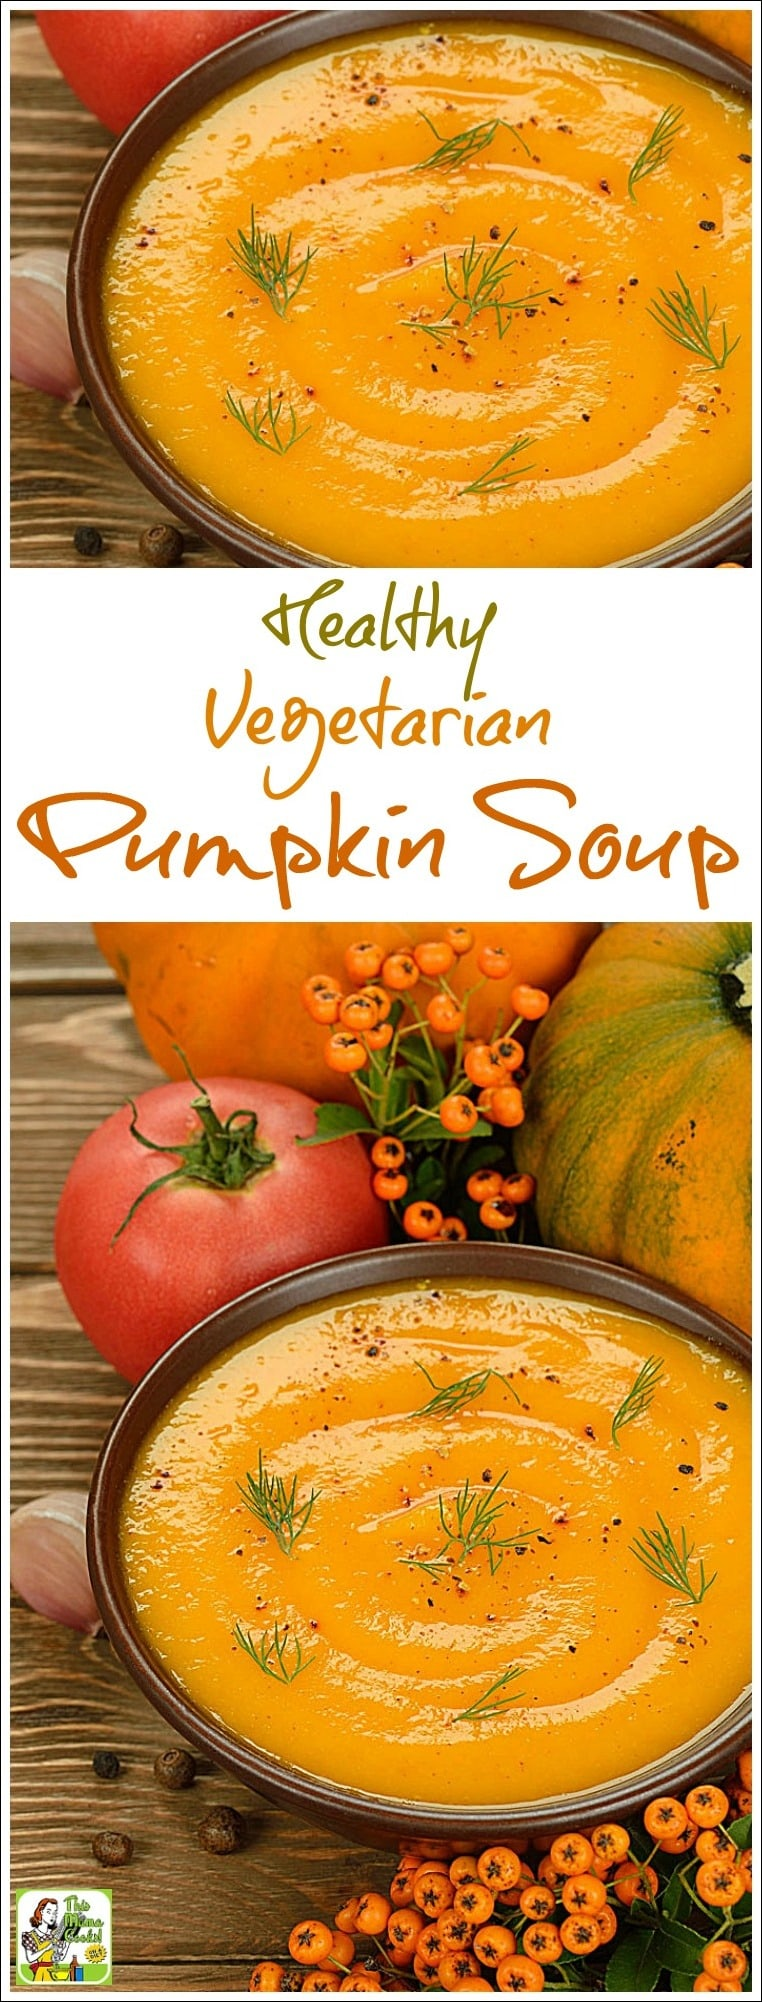 Looking for an easy homemade pumpkin soup recipe? Try this Easy Vegetarian Pumpkin soup. Click to get this healthy gluten free and dairy free pumpkin soup recipe.